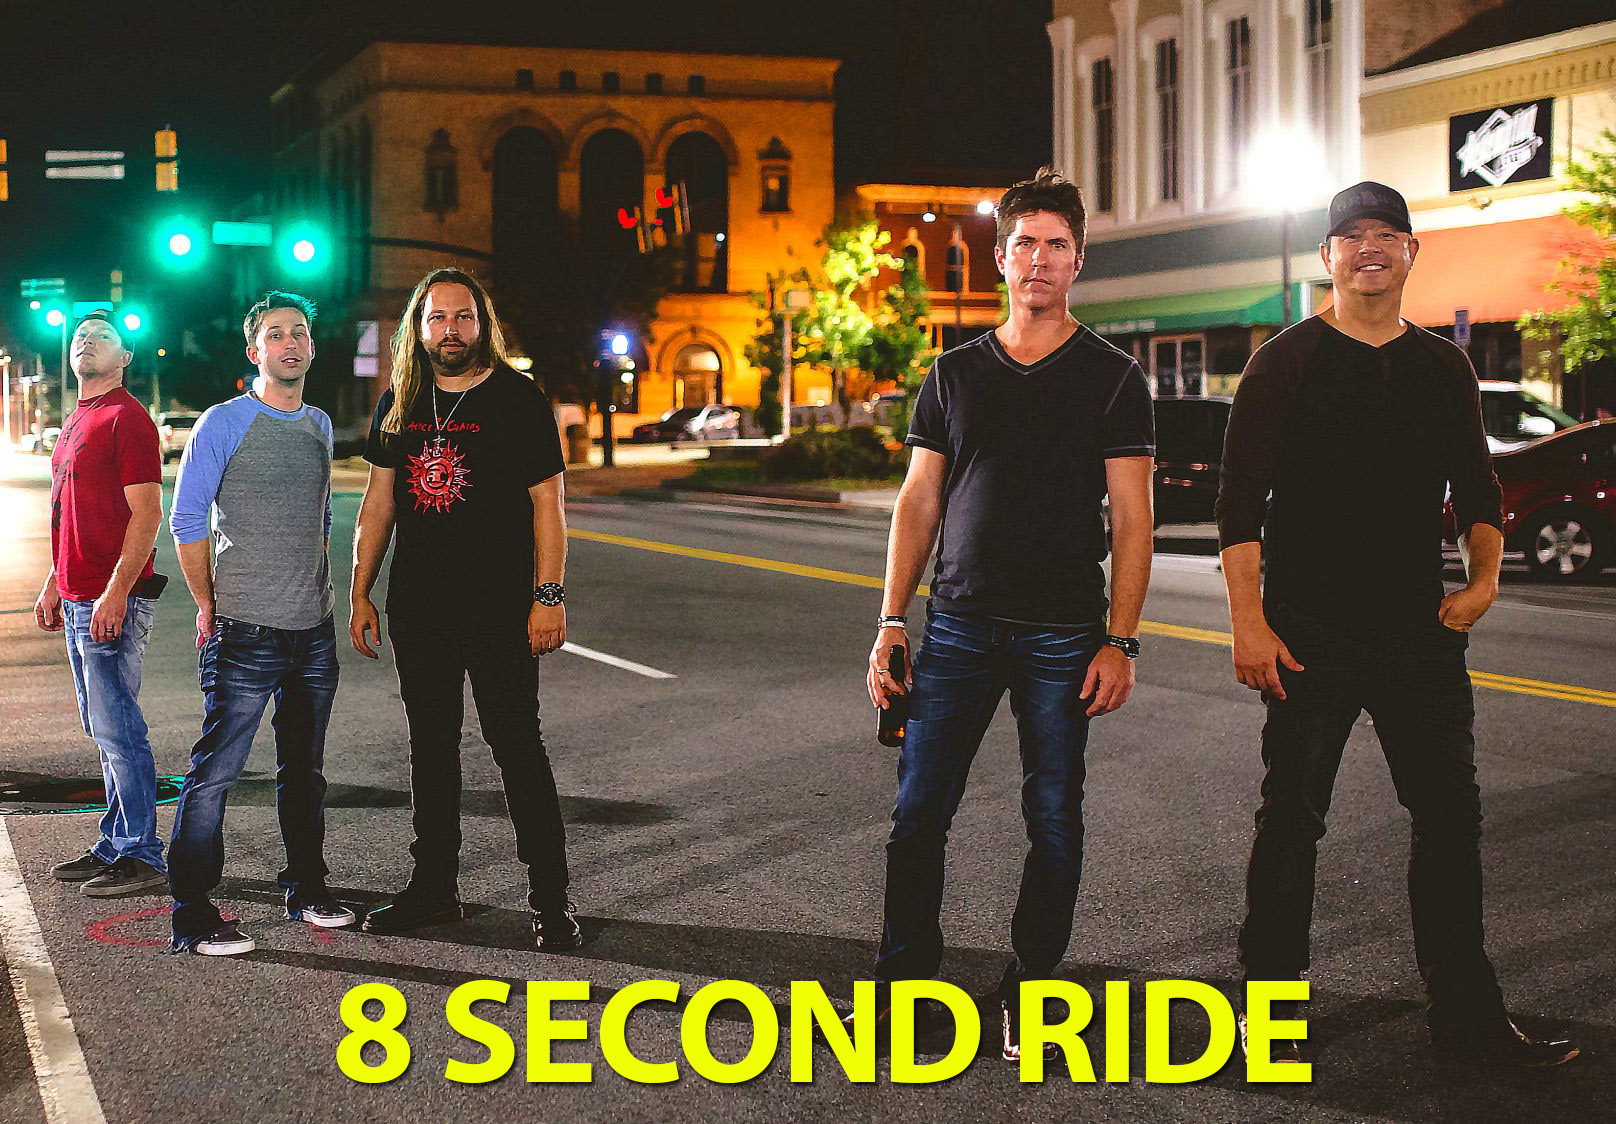 8 Second Ride